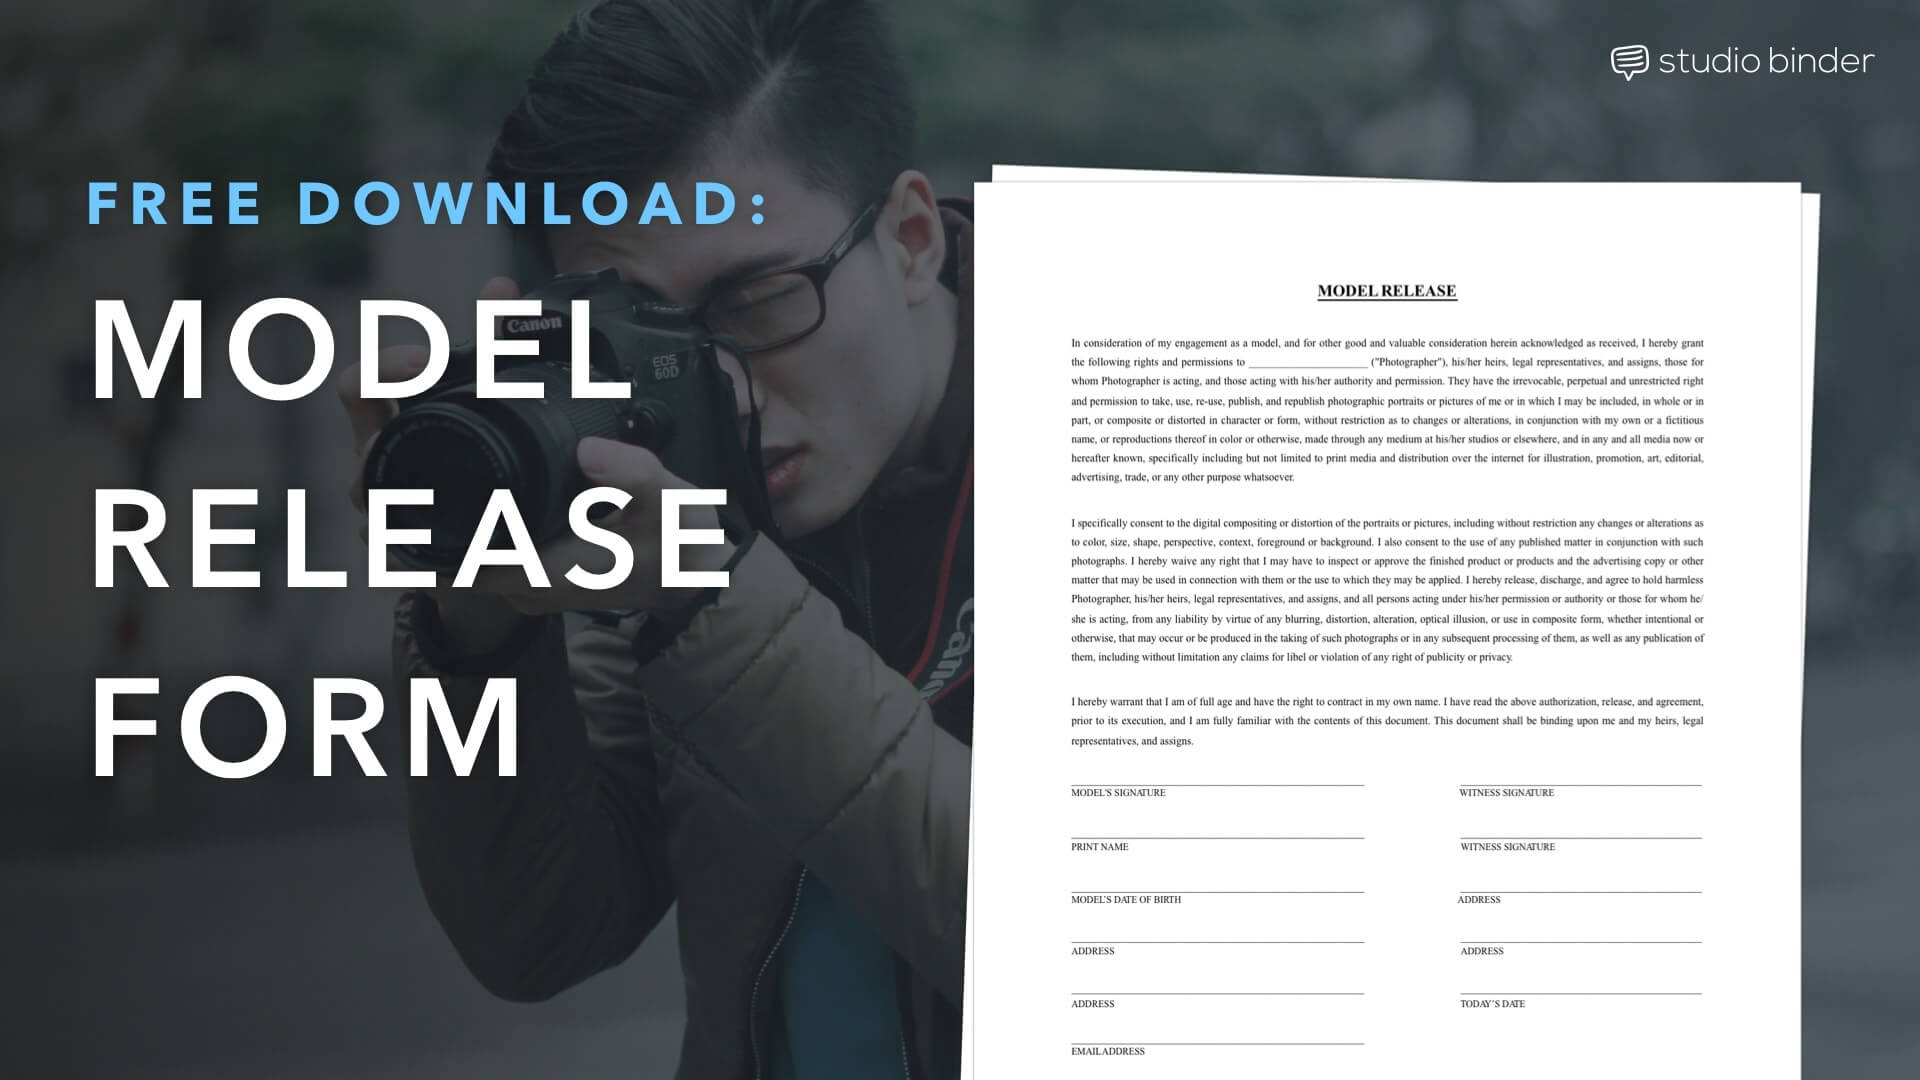 Download a FREE Model Release Form Template | StudioBinder